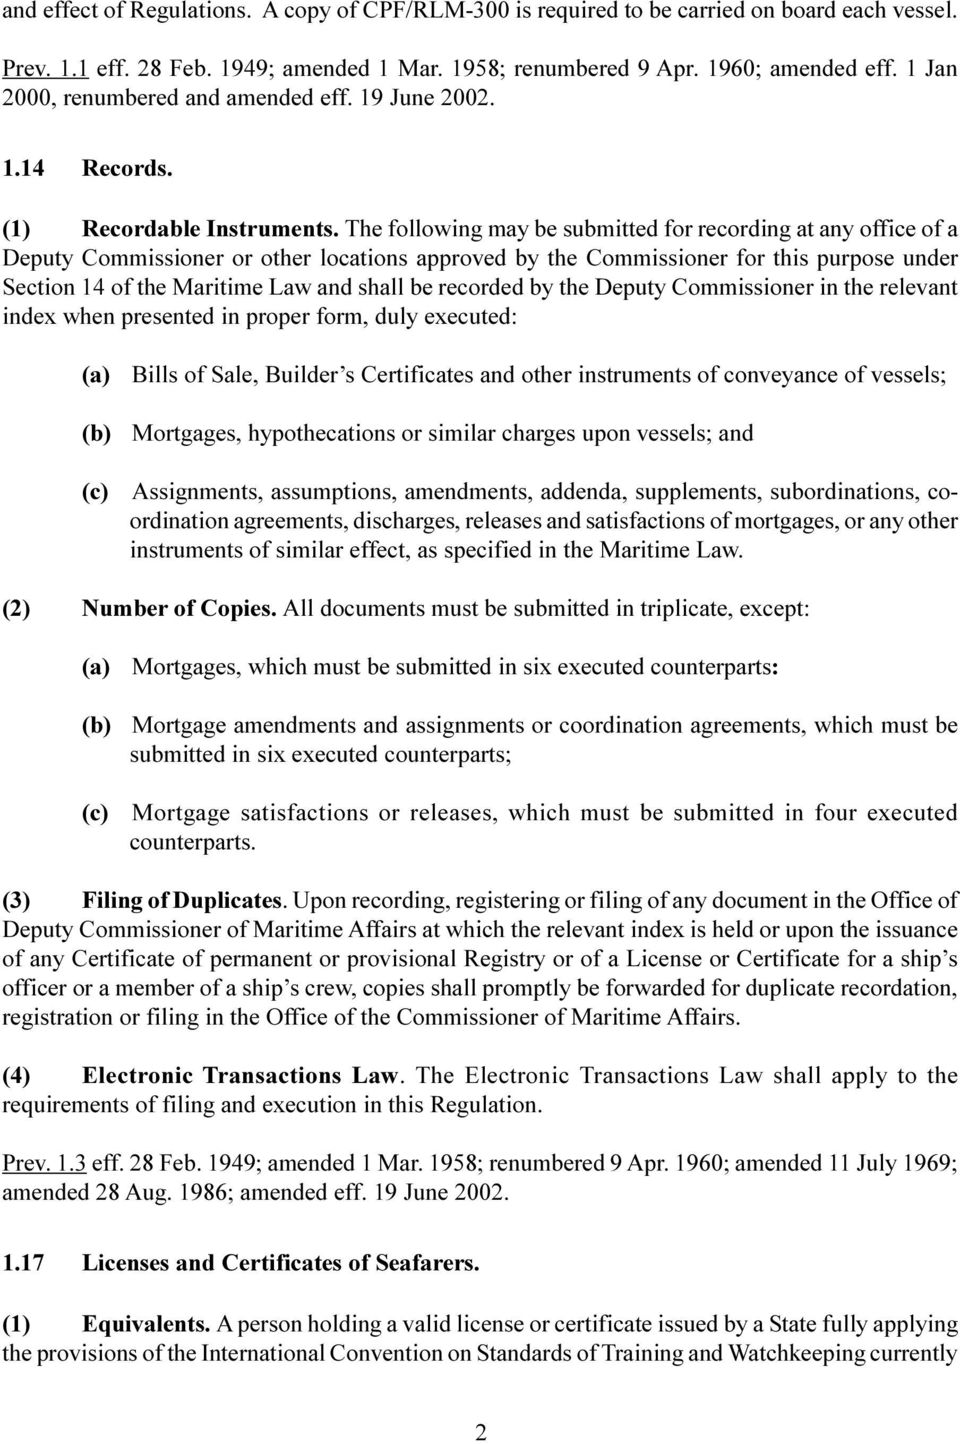 The following may be submitted for recording at any office of a Deputy Commissioner or other locations approved by the Commissioner for this purpose under Section 14 of the Maritime Law and shall be